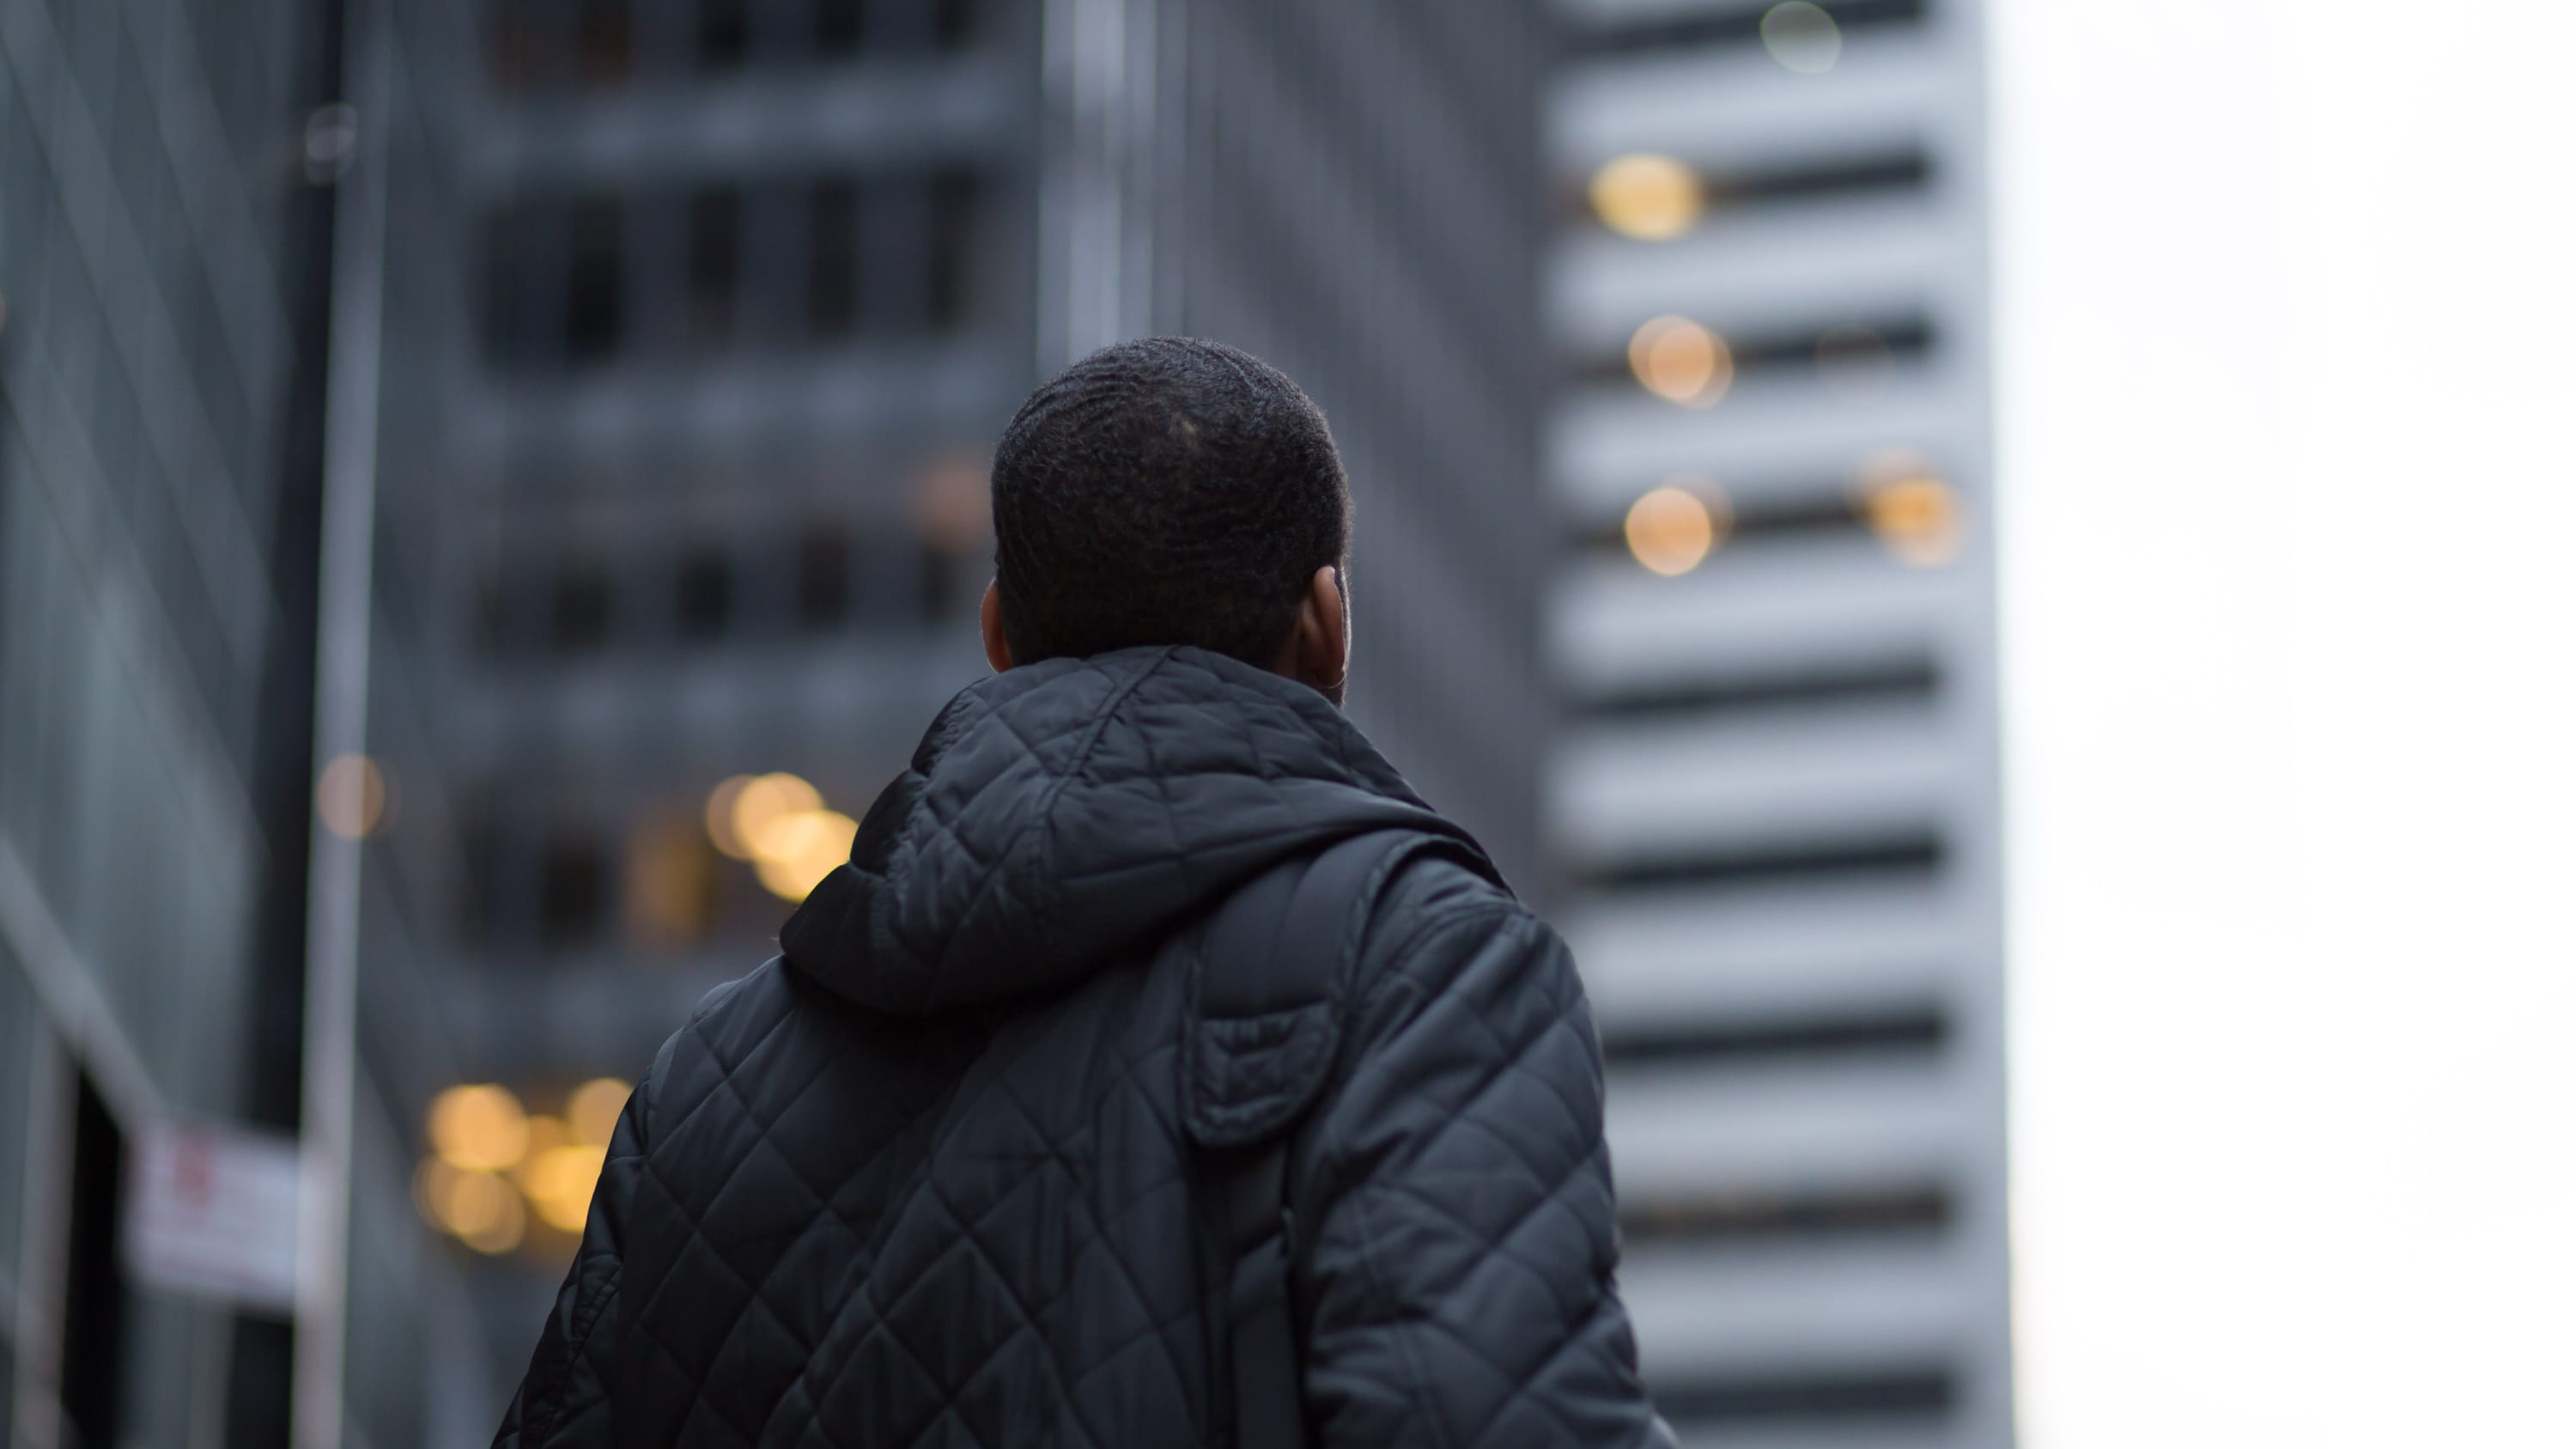 A man outside with his back turned may have an anxiety disorder.